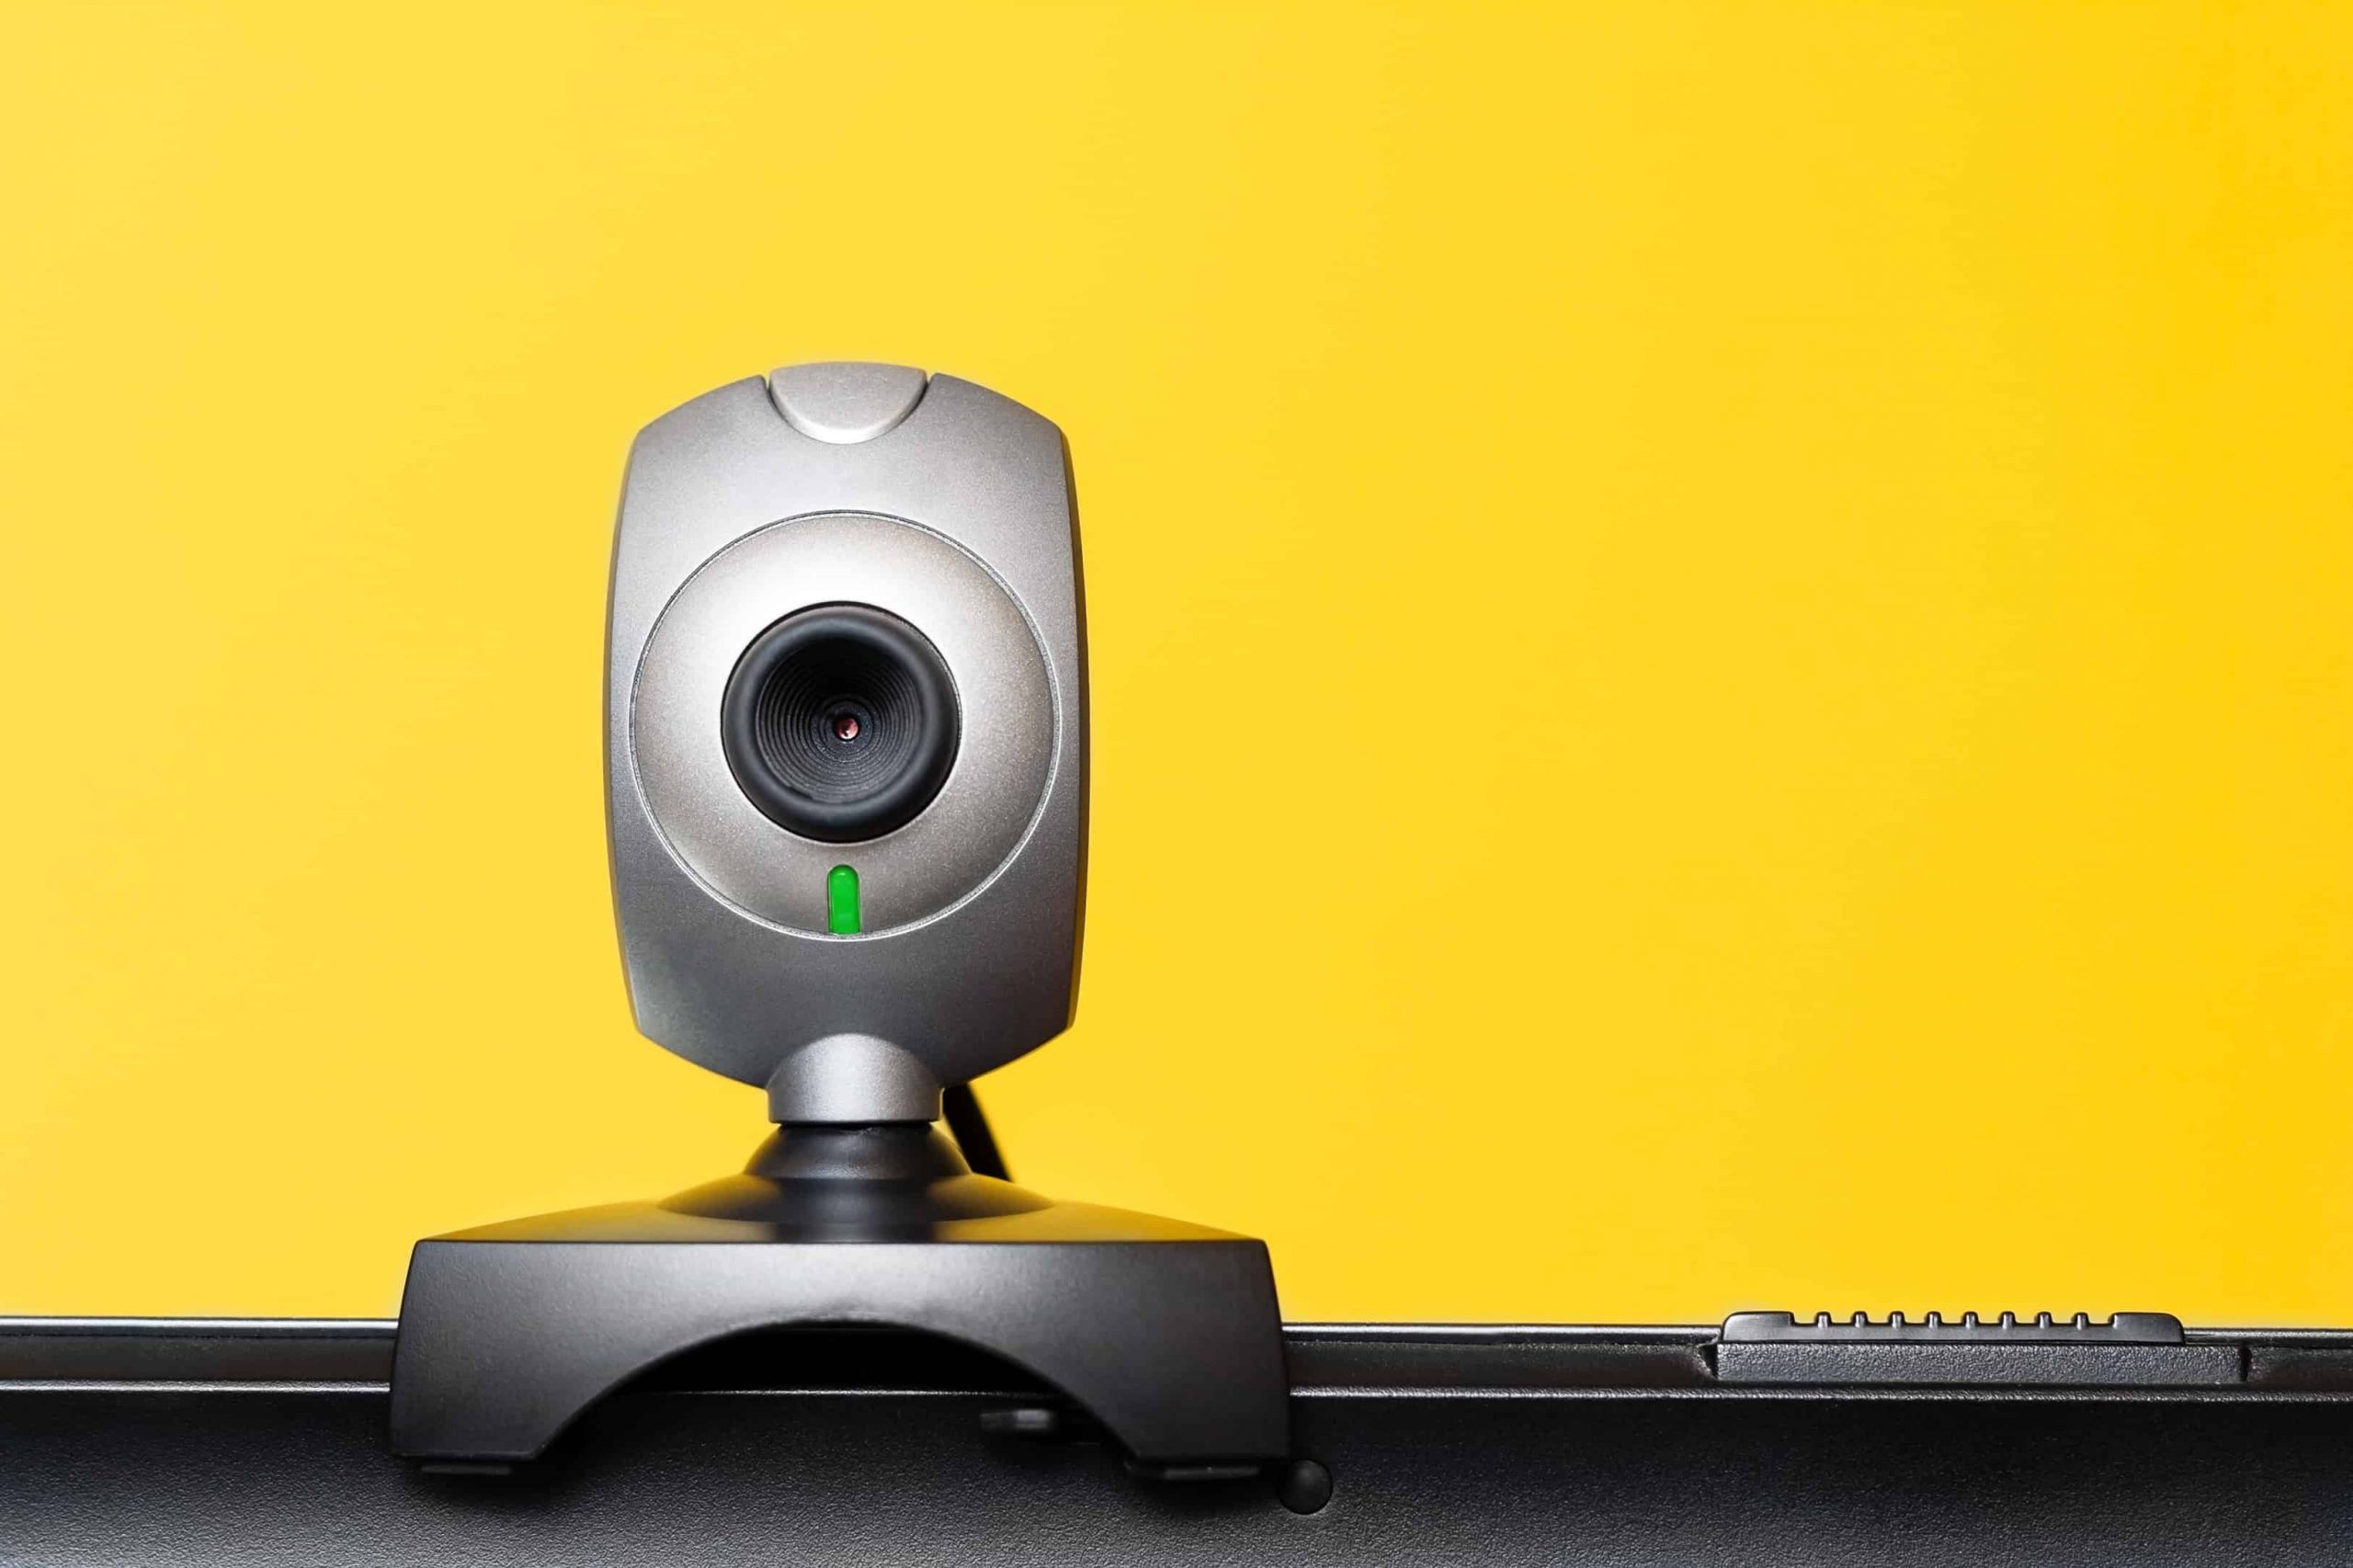 Best Webcam 2020: Shopping Guide & Review